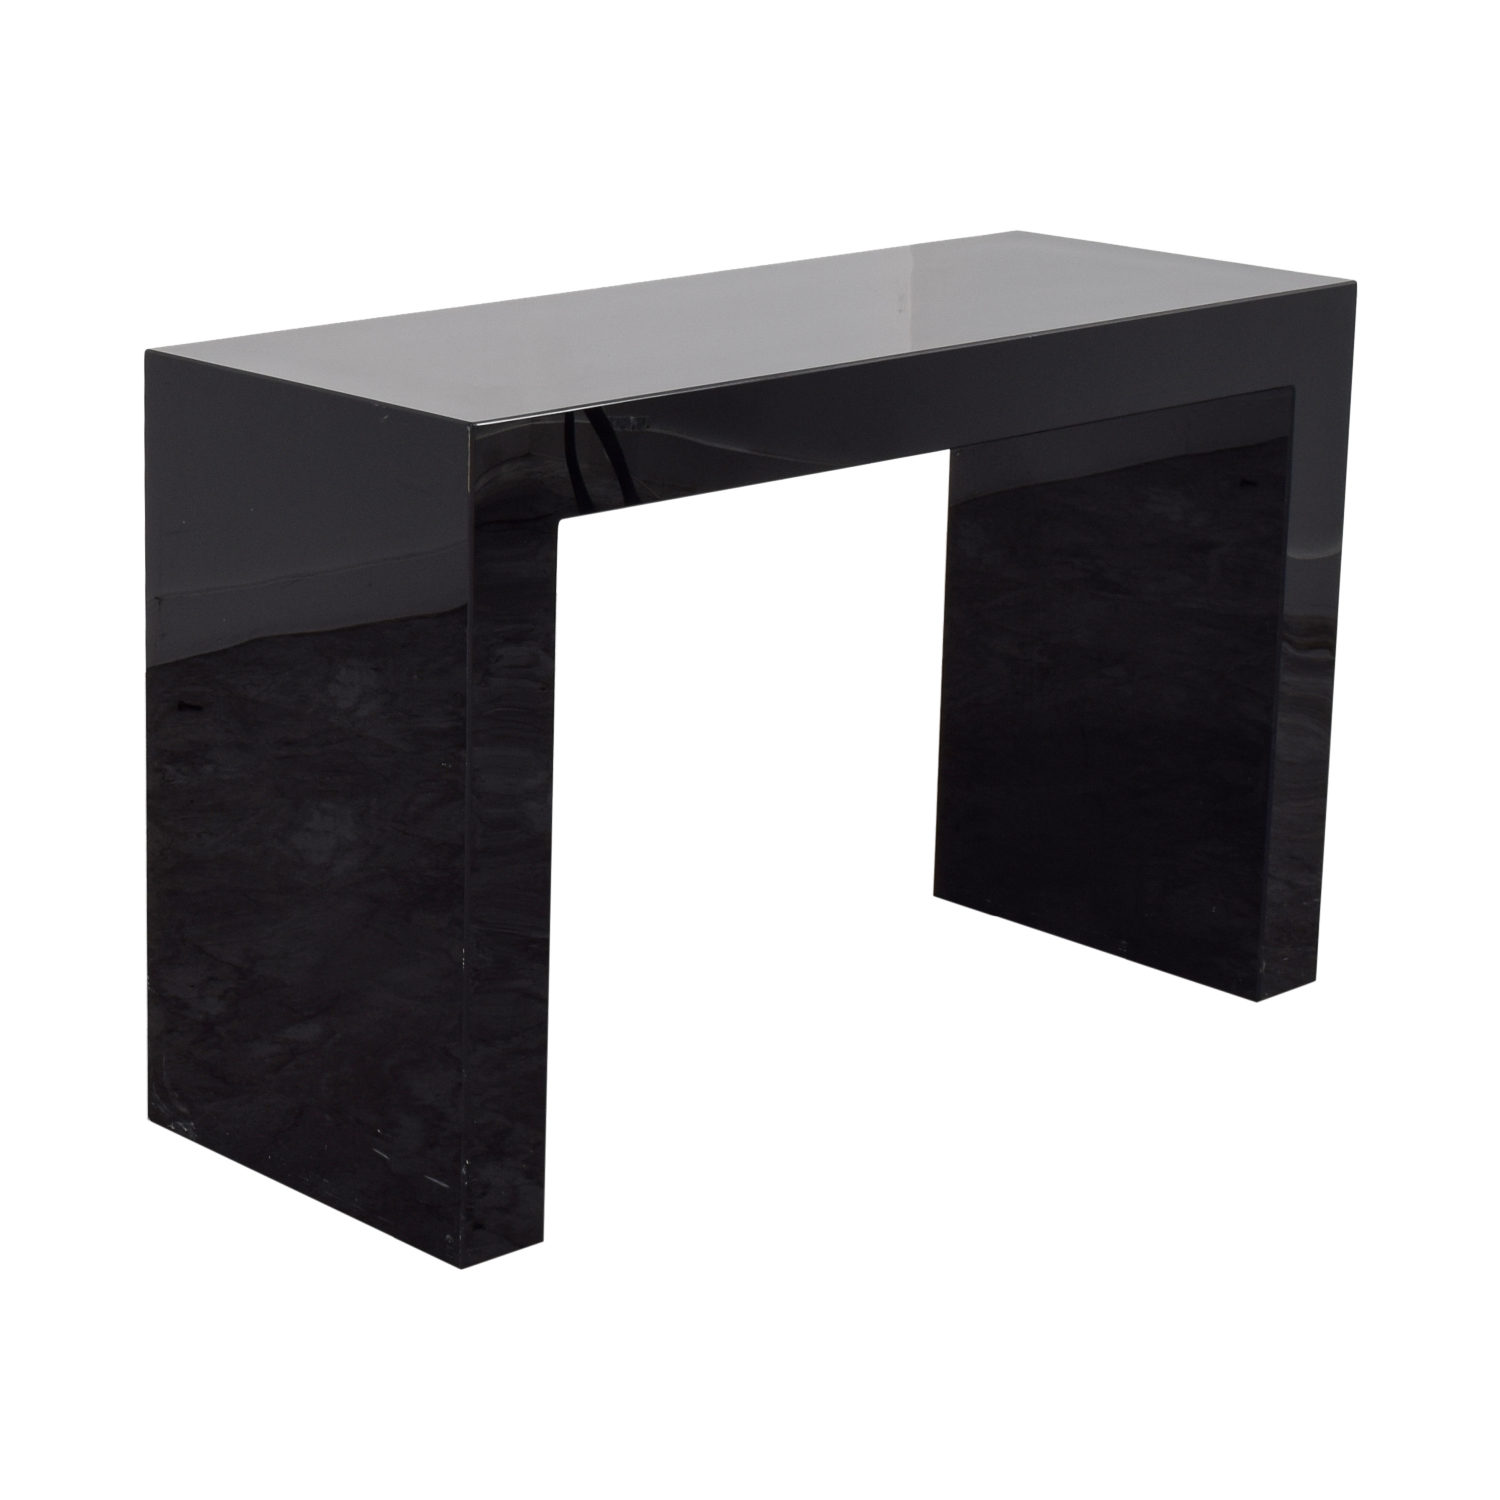 Glassworks Glassworks Credenza Table nyc